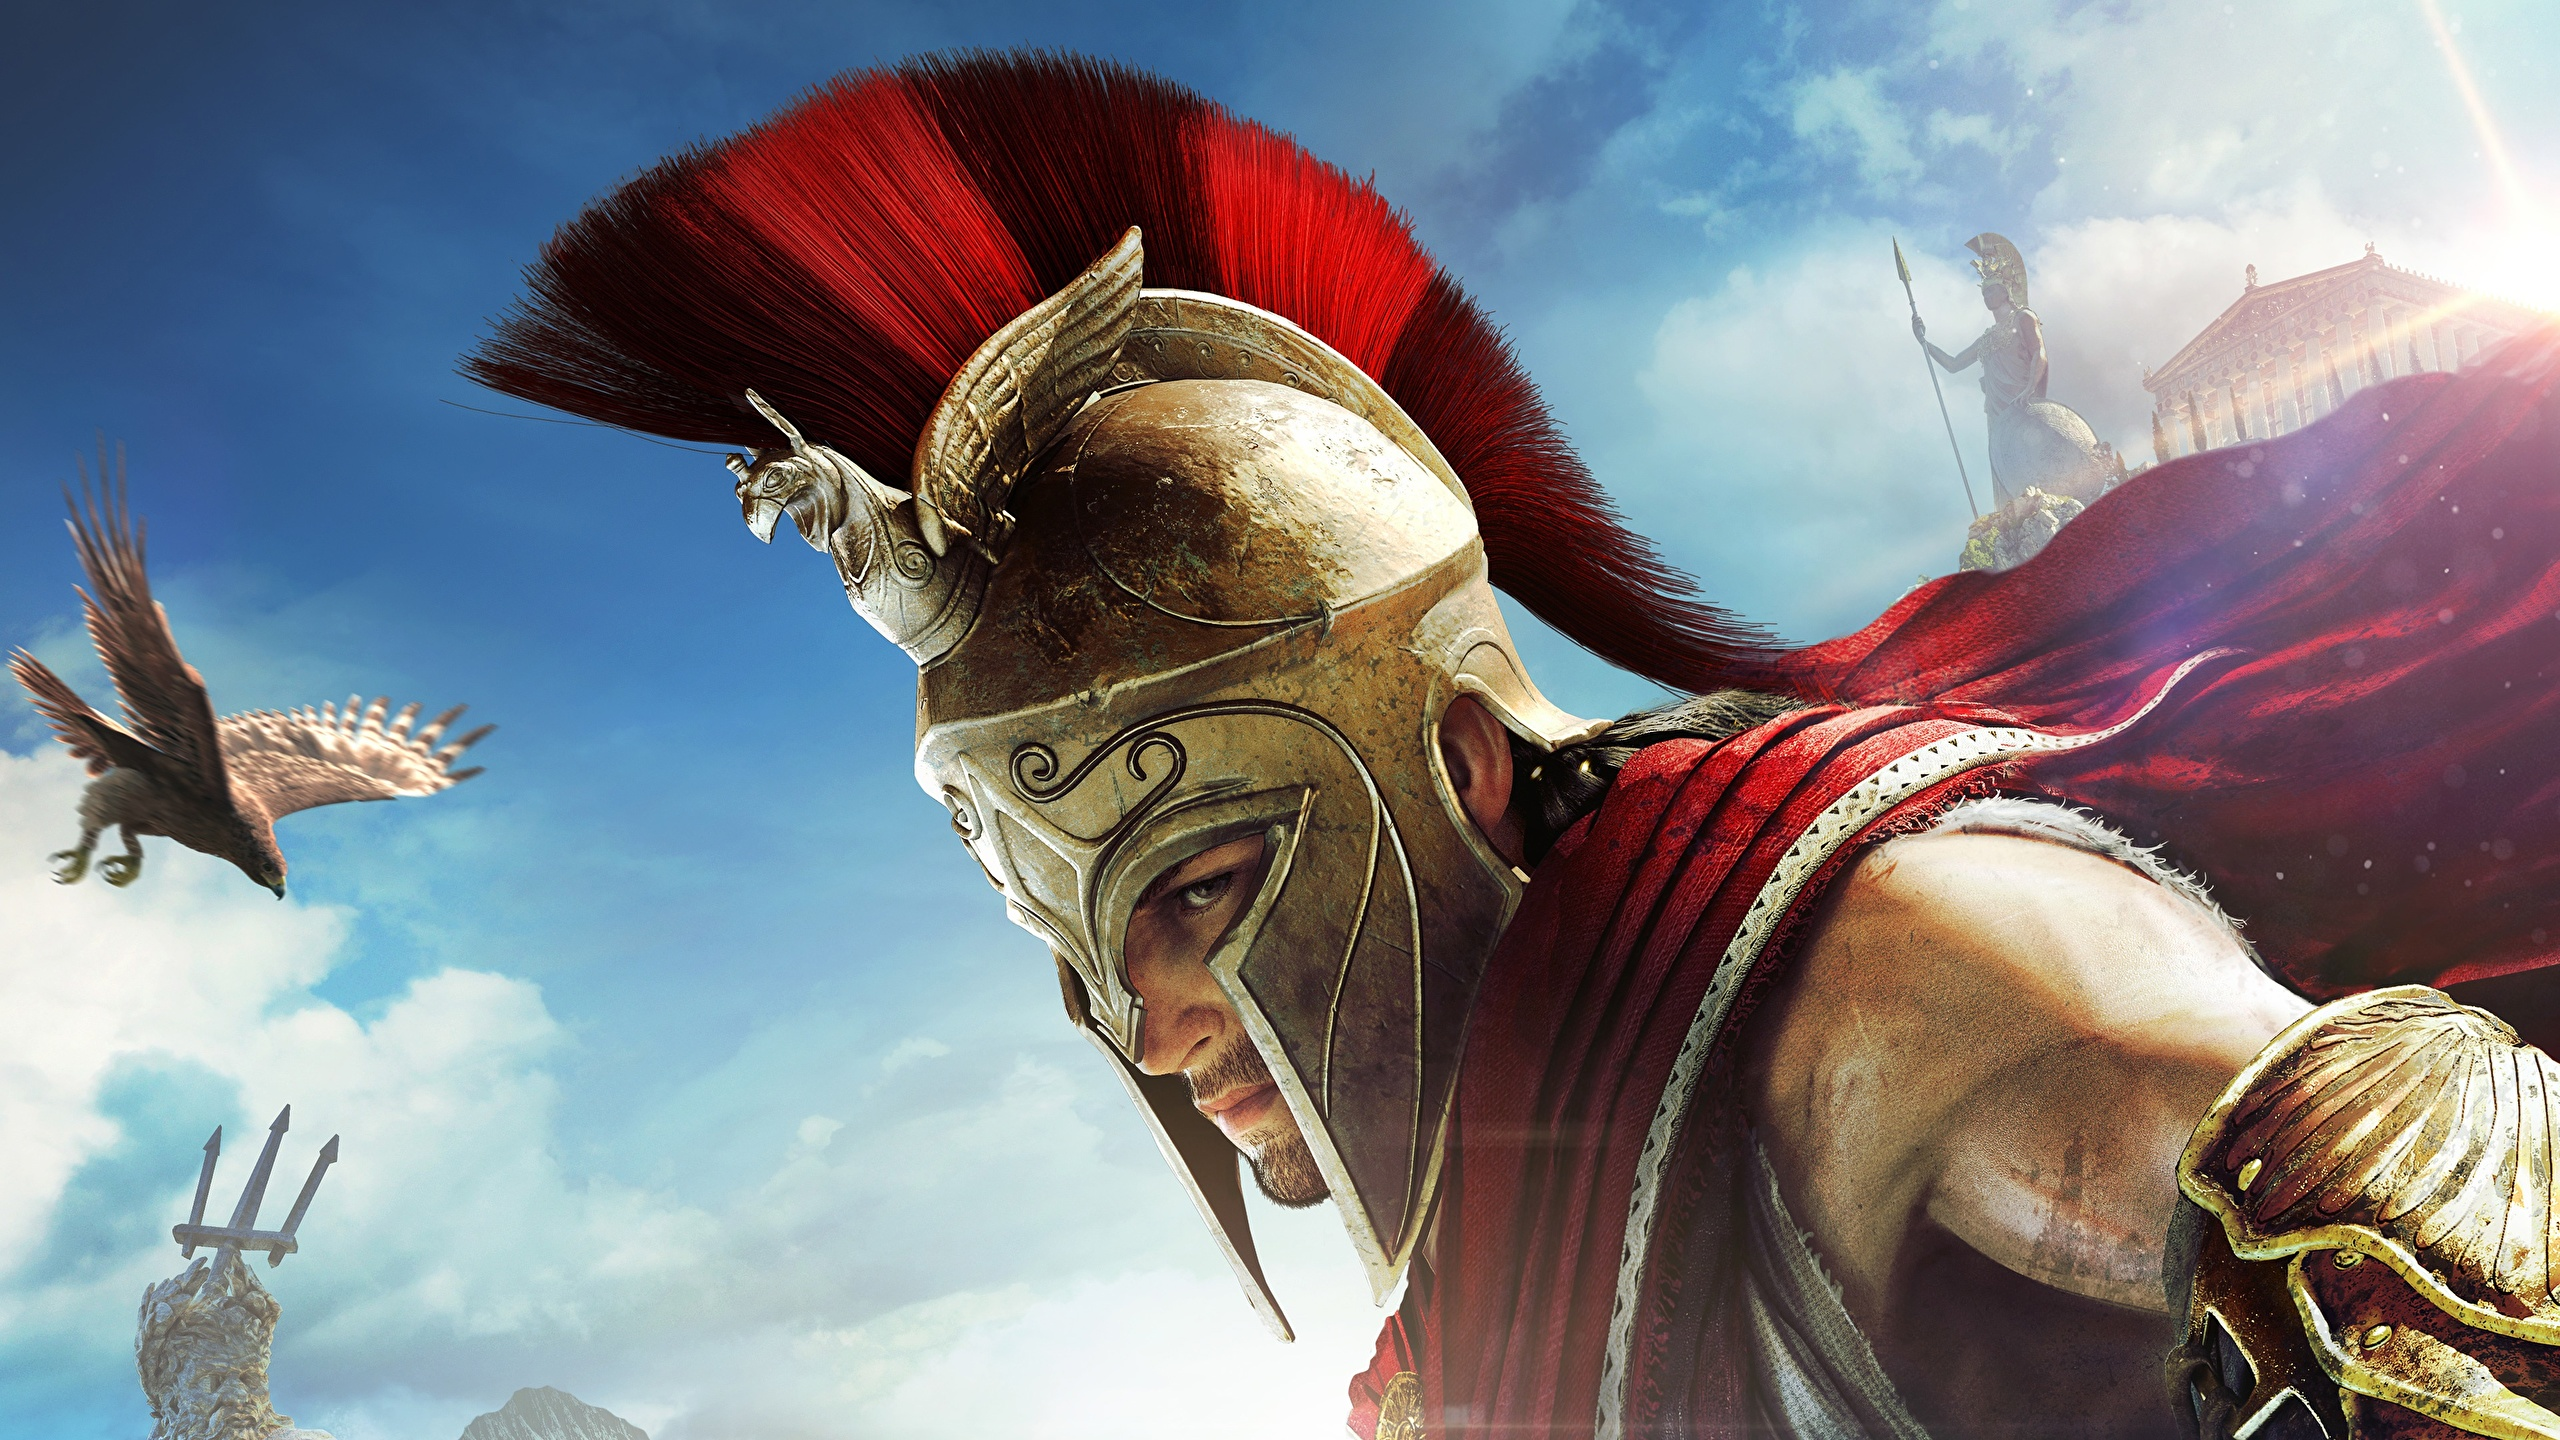 Фото Assassin's Creed Odyssey воины шлема Игры 2560x1440 воин Шлем в шлеме Воители компьютерная игра